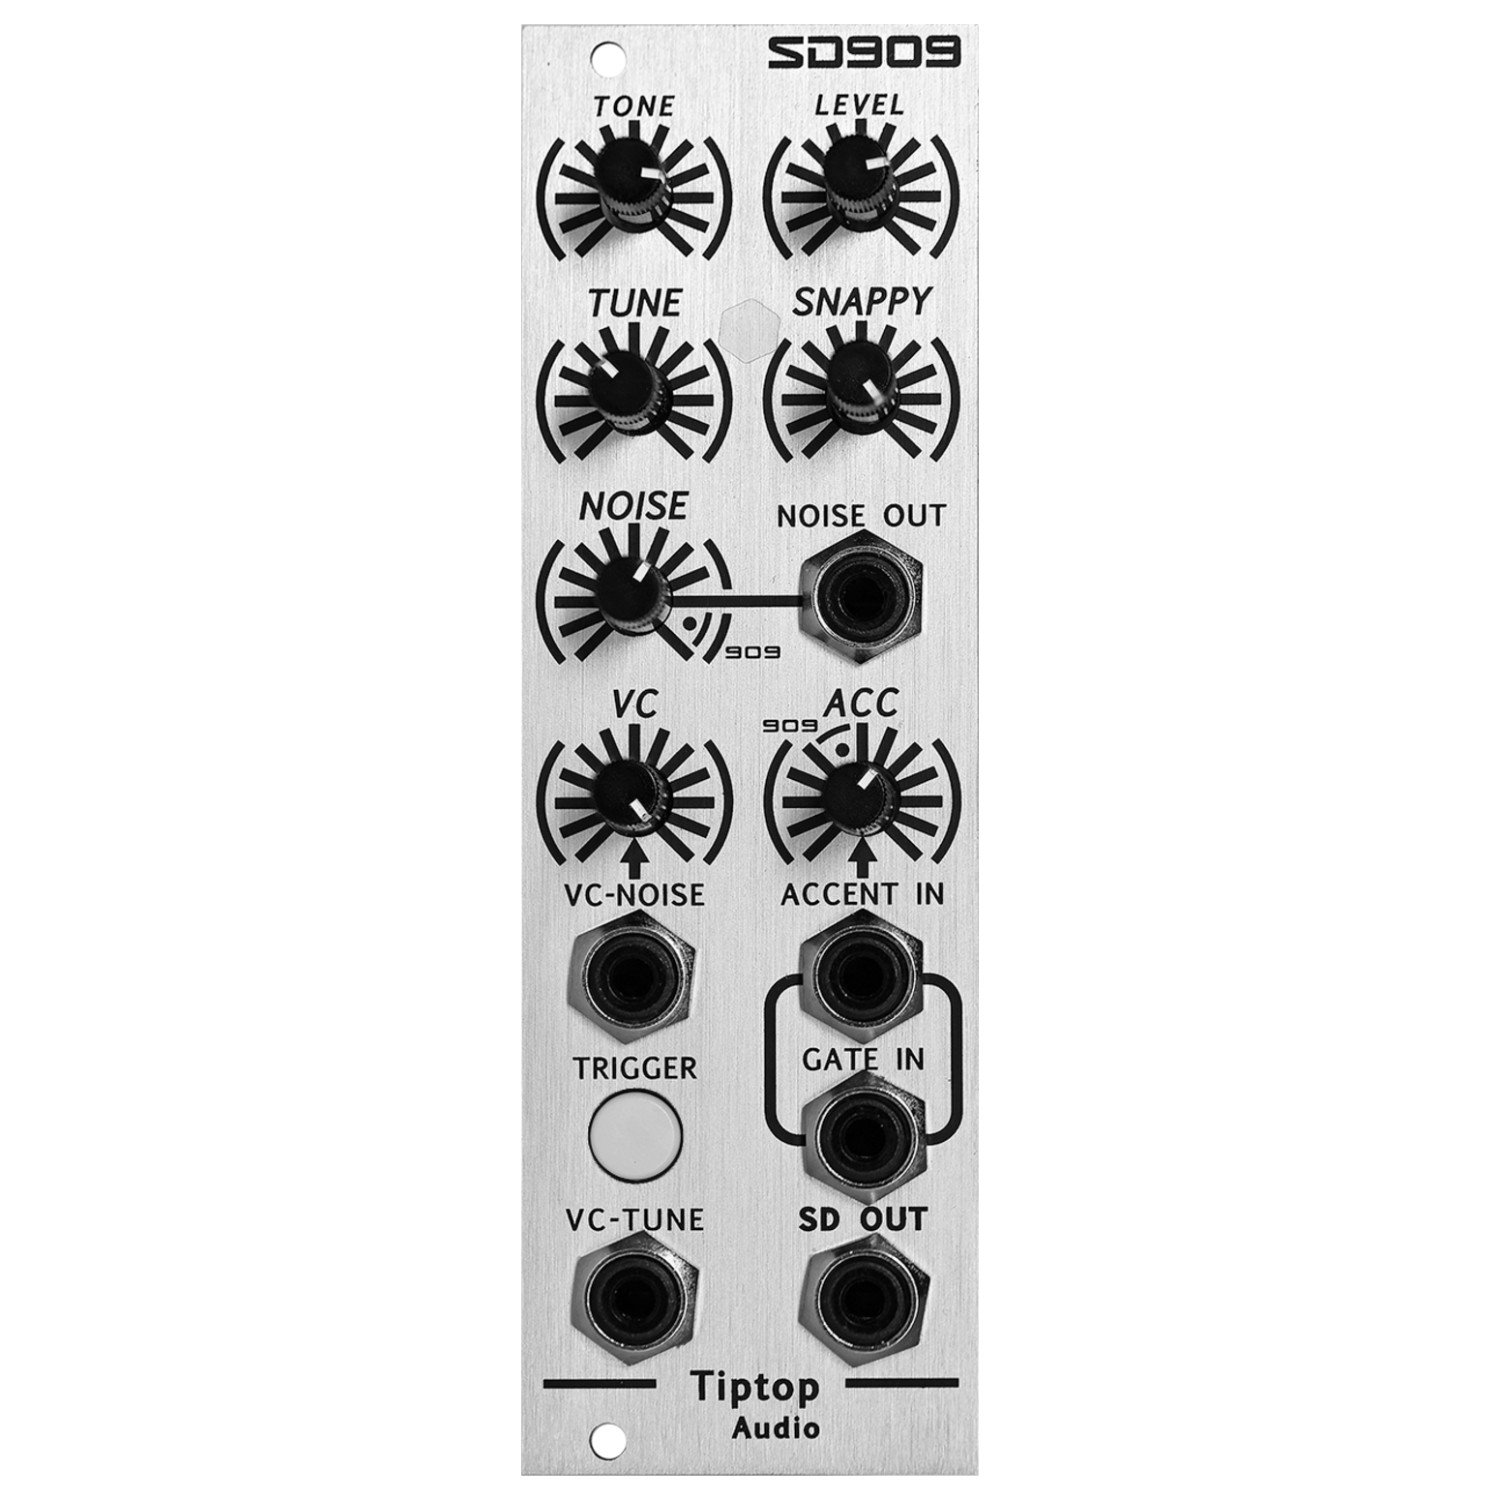 Tiptop SD909 Modular TR909 Snare and Noise Generator Eurorack Synth Module